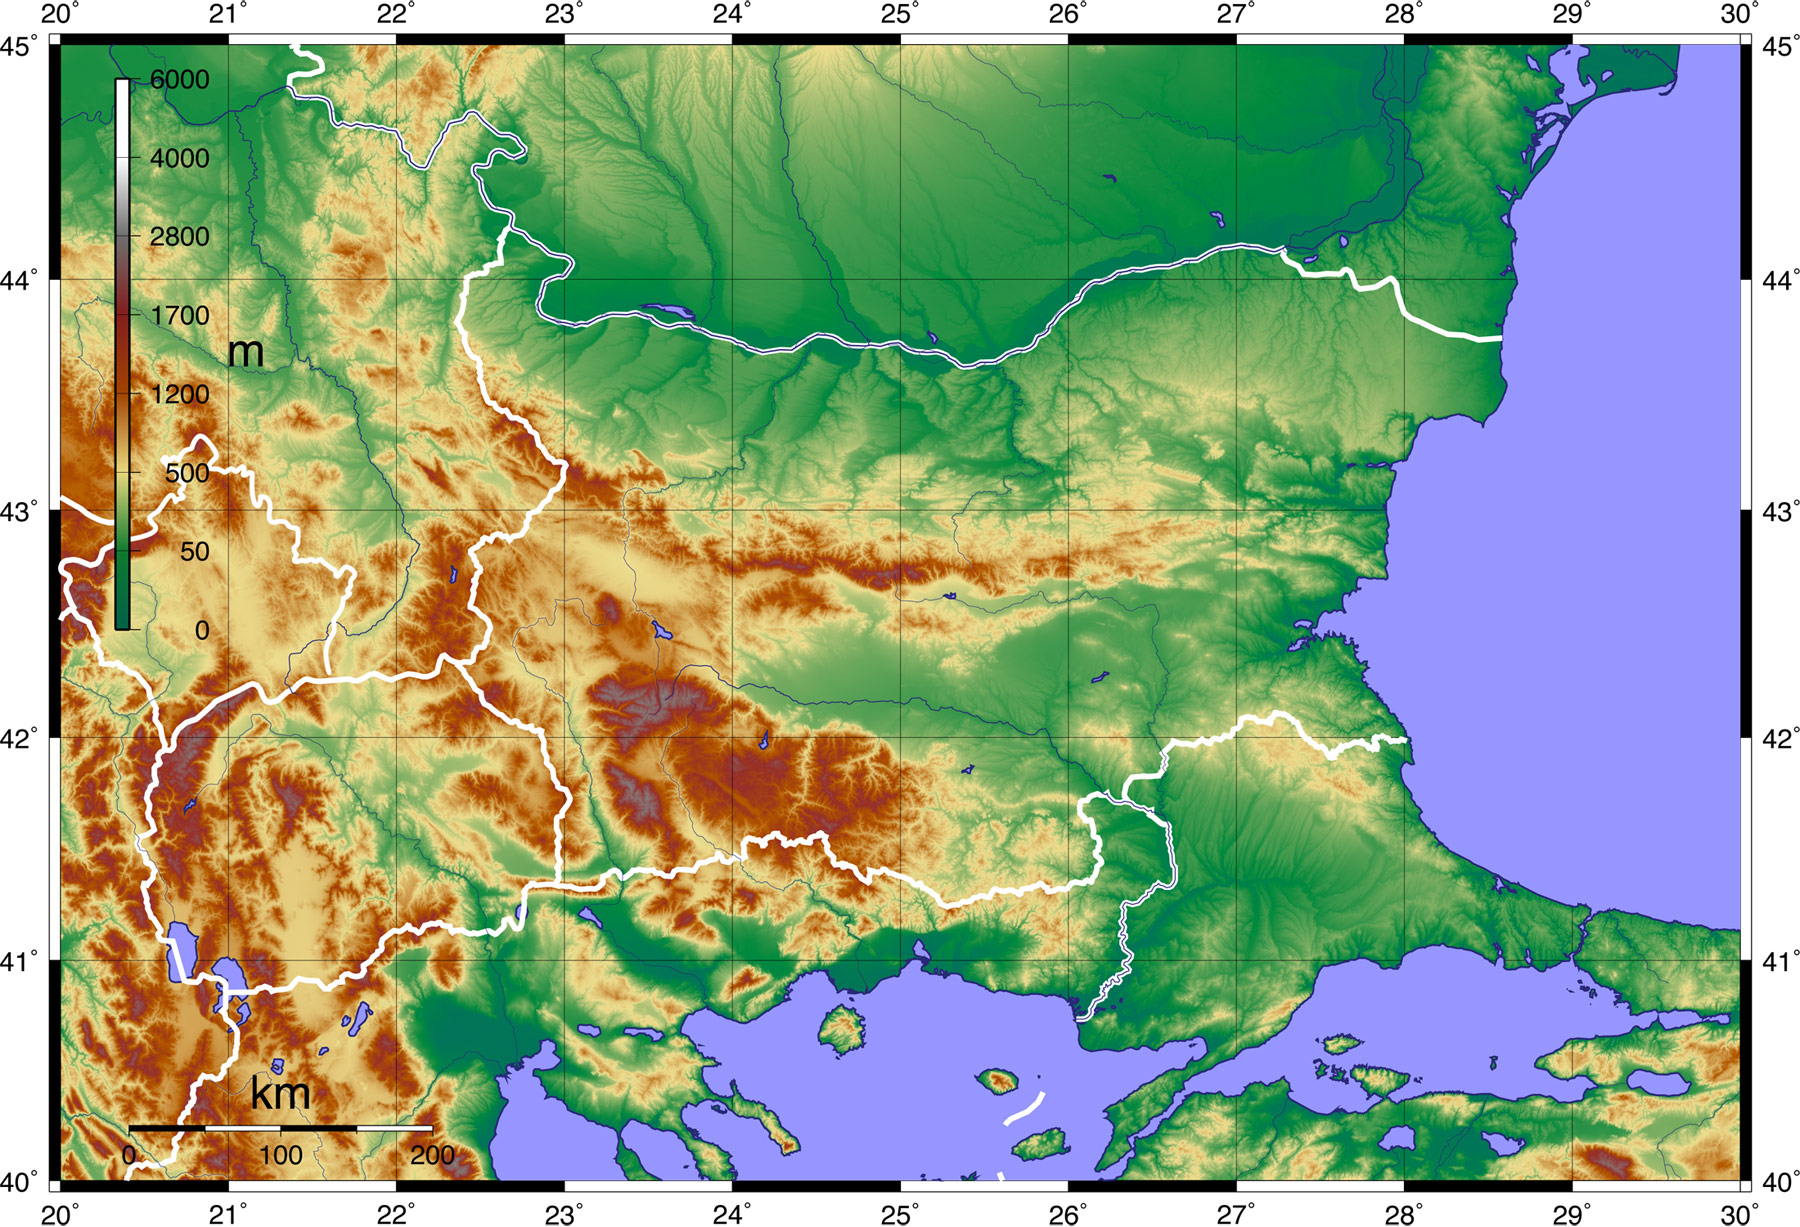 Topographic Map of Bulgaria